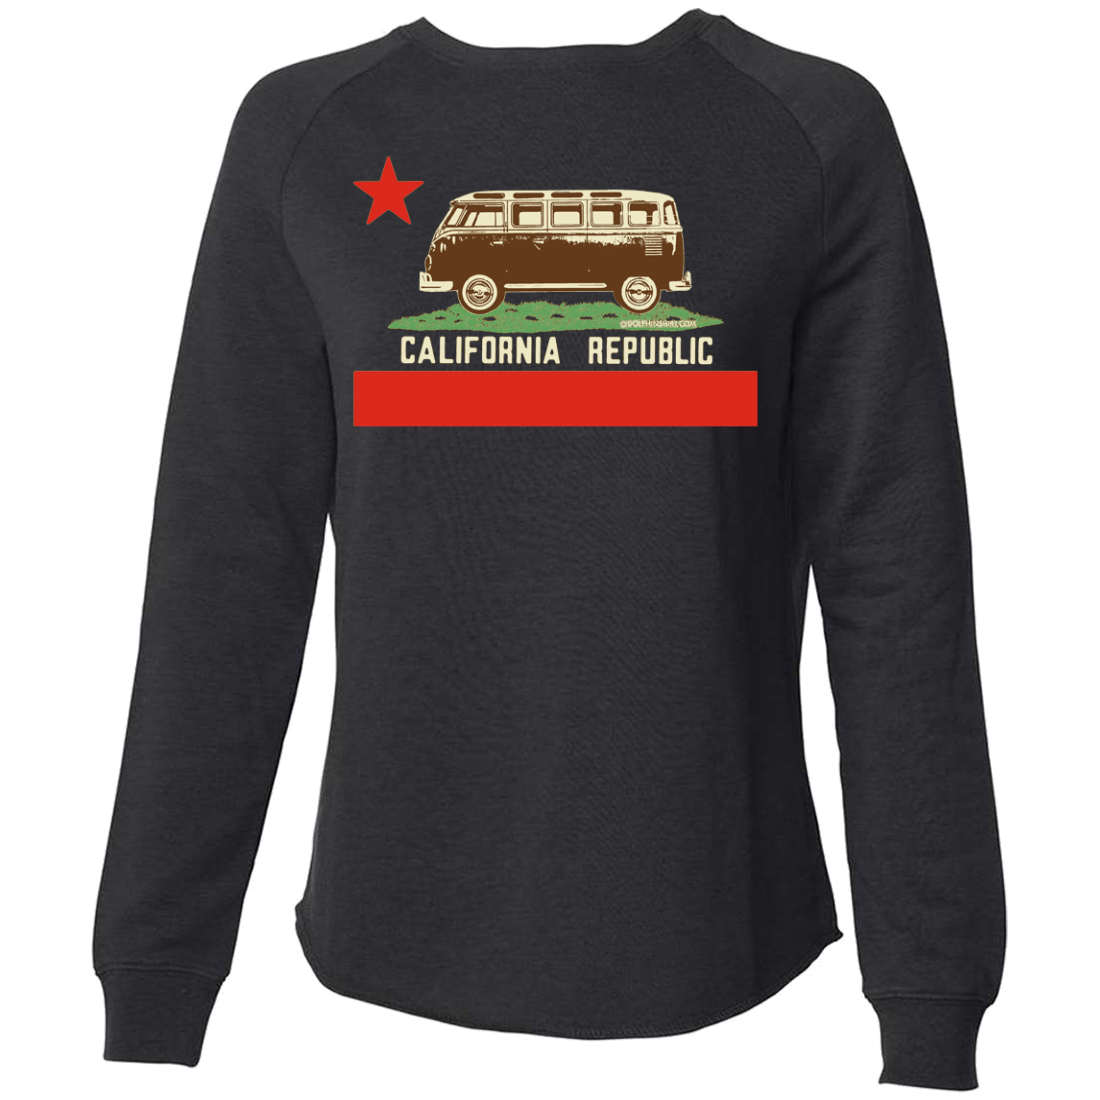 California Republic Vintage Van Super Soft Crewneck Sweater